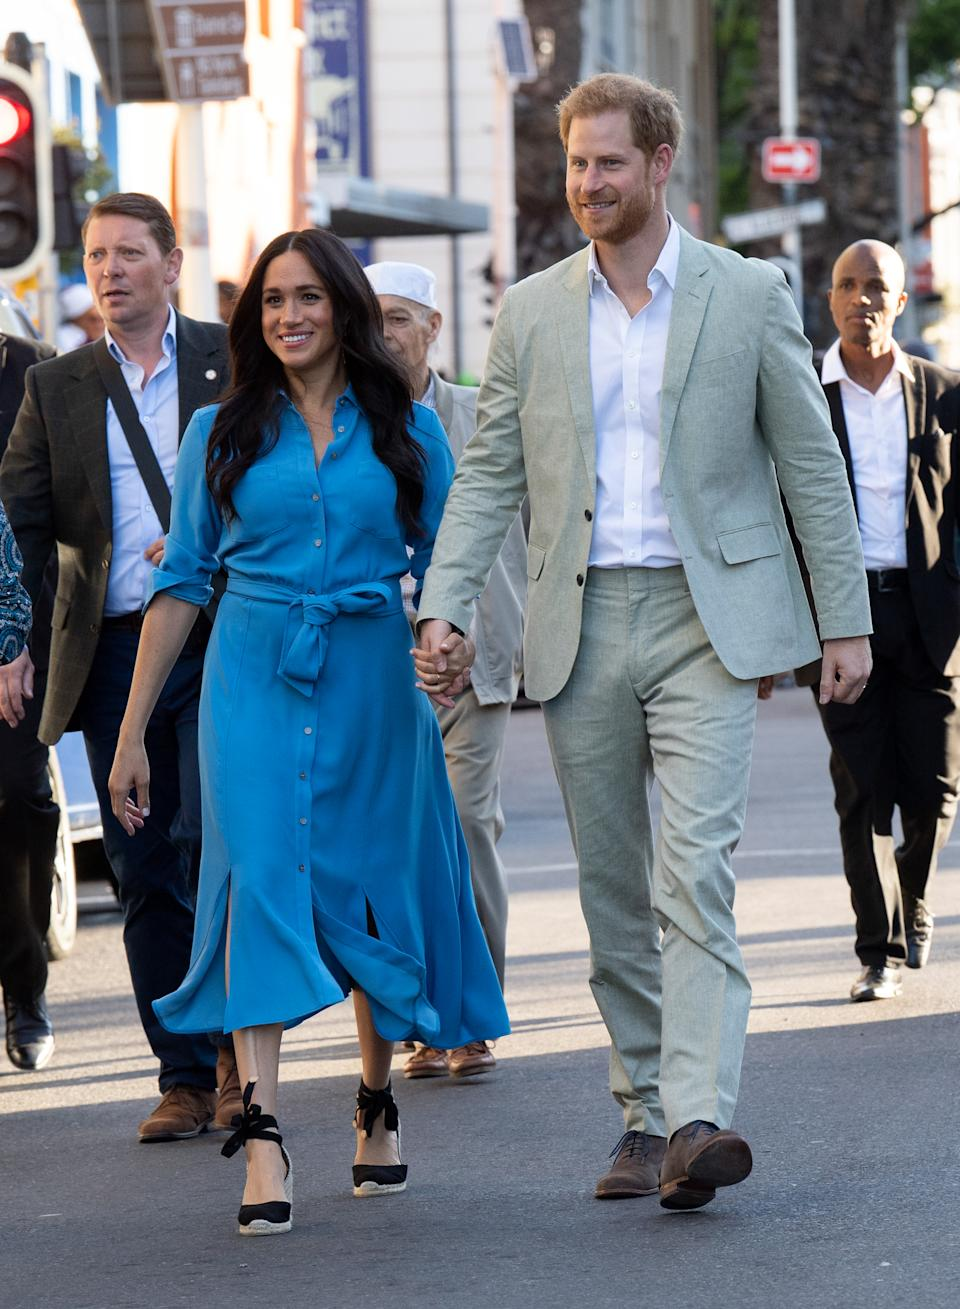 The Duke visited District 6 in Cape Town wearing a grey two-piece suit from J.Crew, a white button-down shirt and chocolate brown shoes. [Photo: Getty Images]